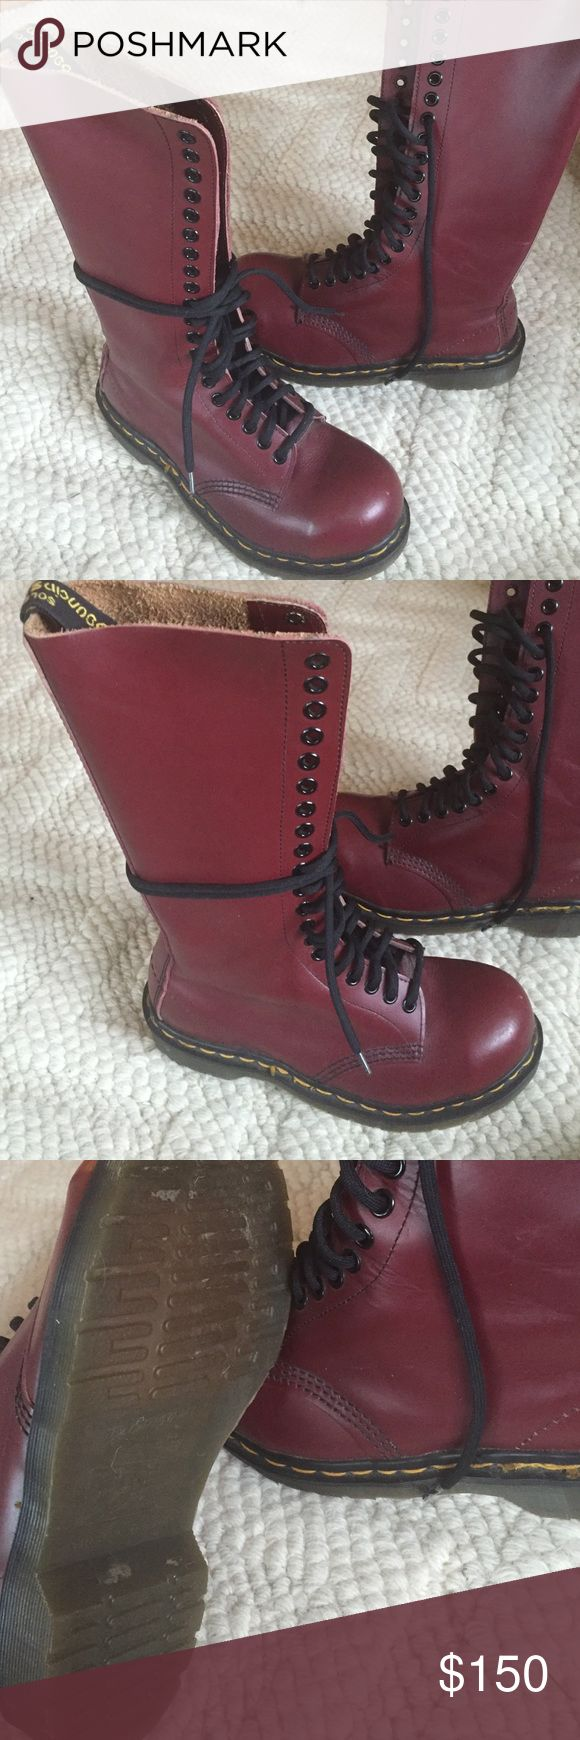 Vintage Burgundy Doc Martens Rare Vintage 20 eyelet Doc Martens with steel toe. These are true vintage docs from 1998! They have never been worn! More pics upon request. UK SZ 4/ US SZ 6 Dr. Martens Shoes Combat & Moto Boots